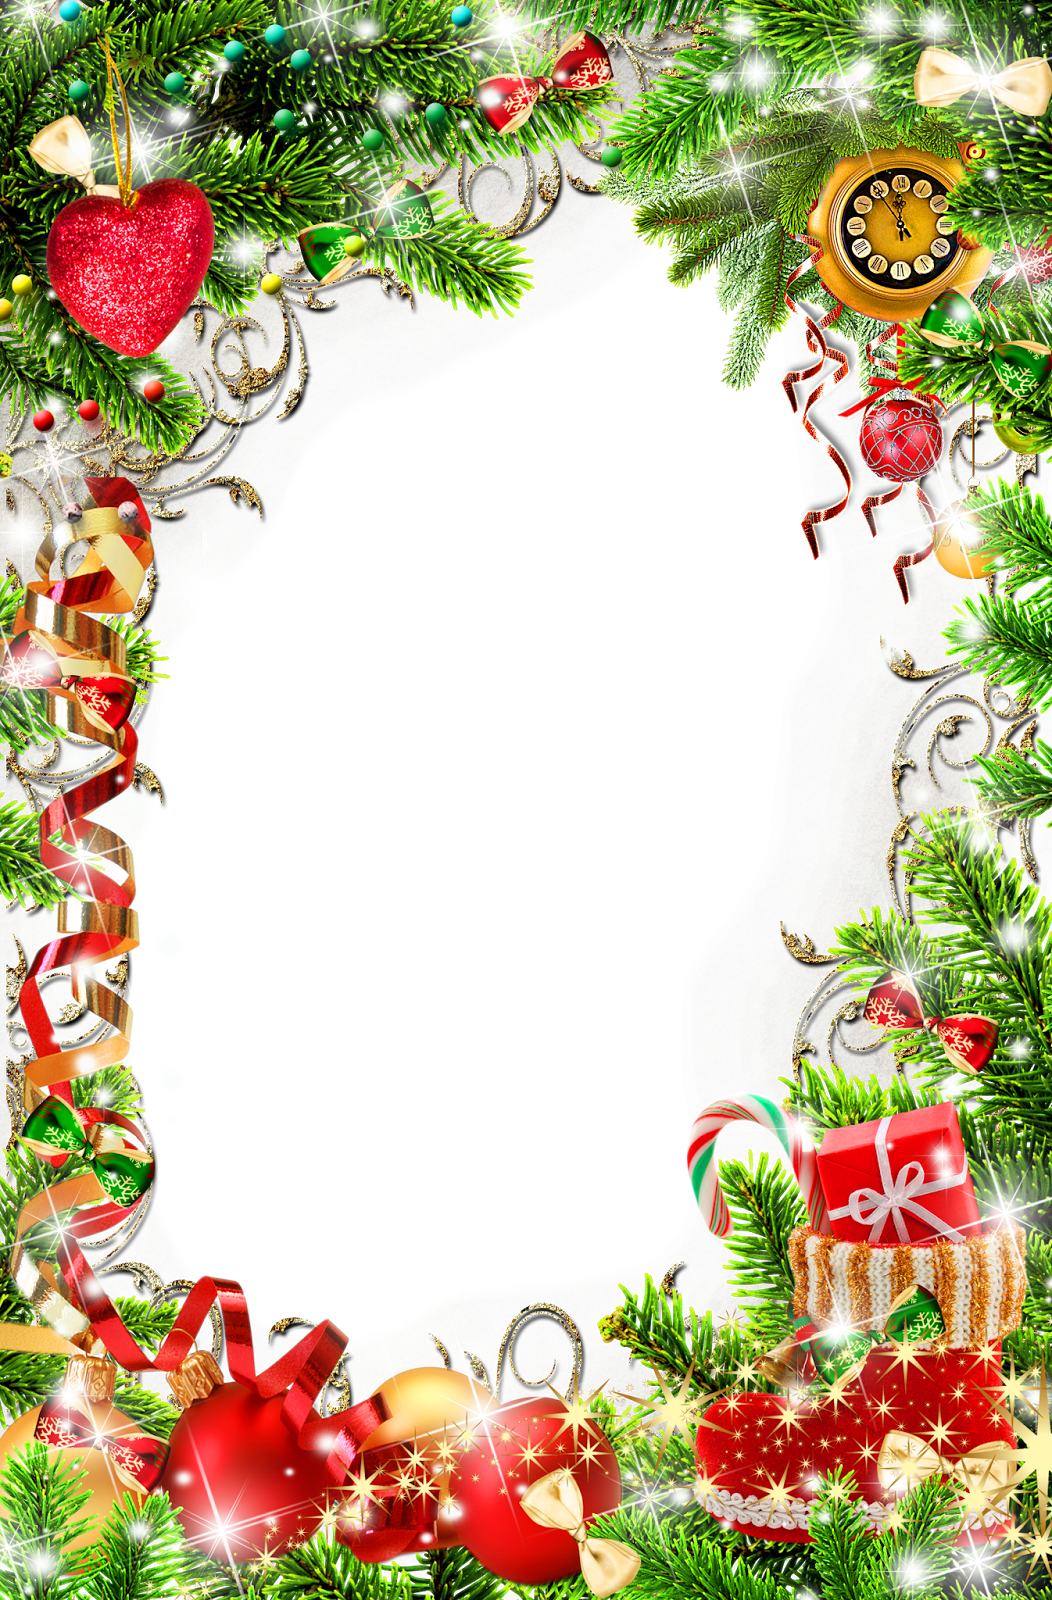 HD Christmas Png Frames Free , Free Unlimited Download #417319.